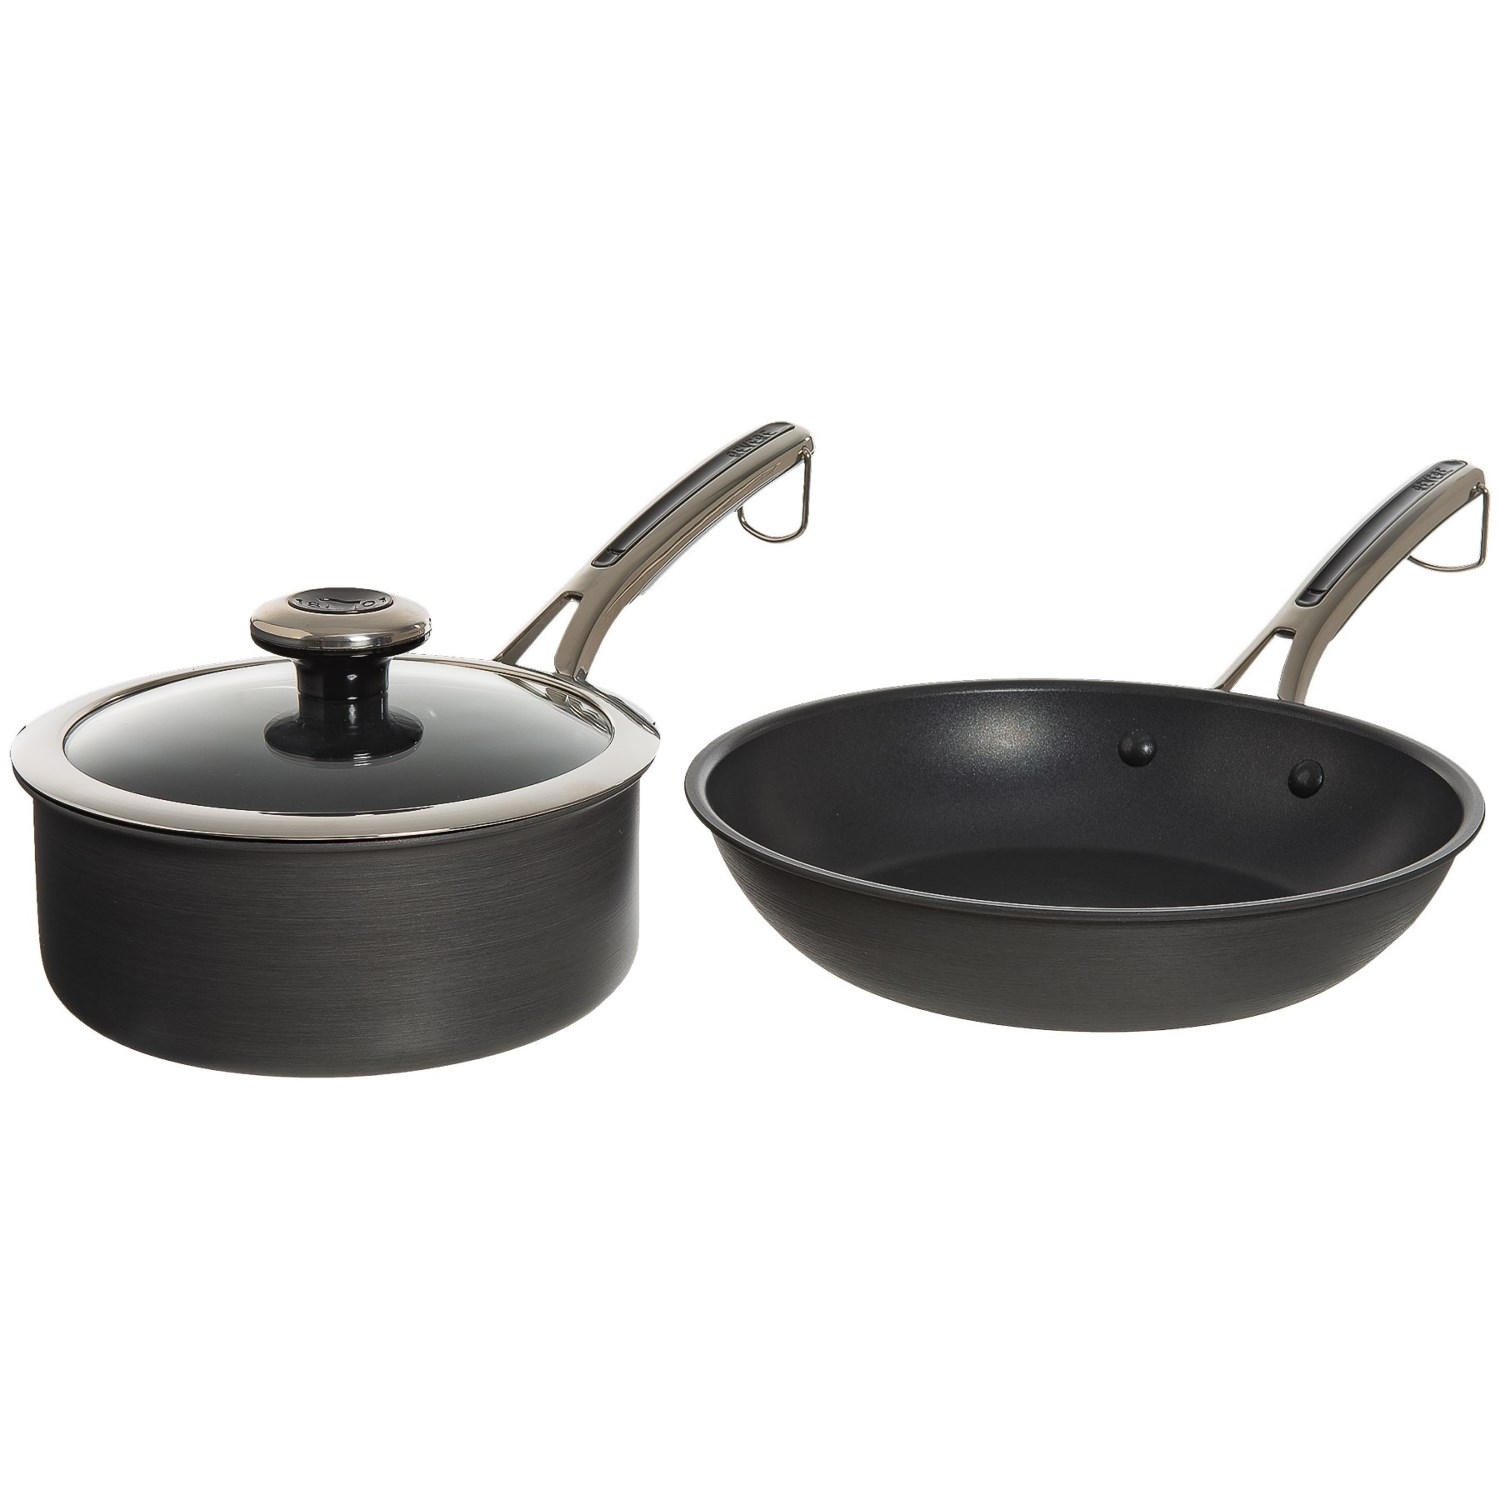 Revere Ware Hard Anodized Aluminum Nonstick Frying Pan And